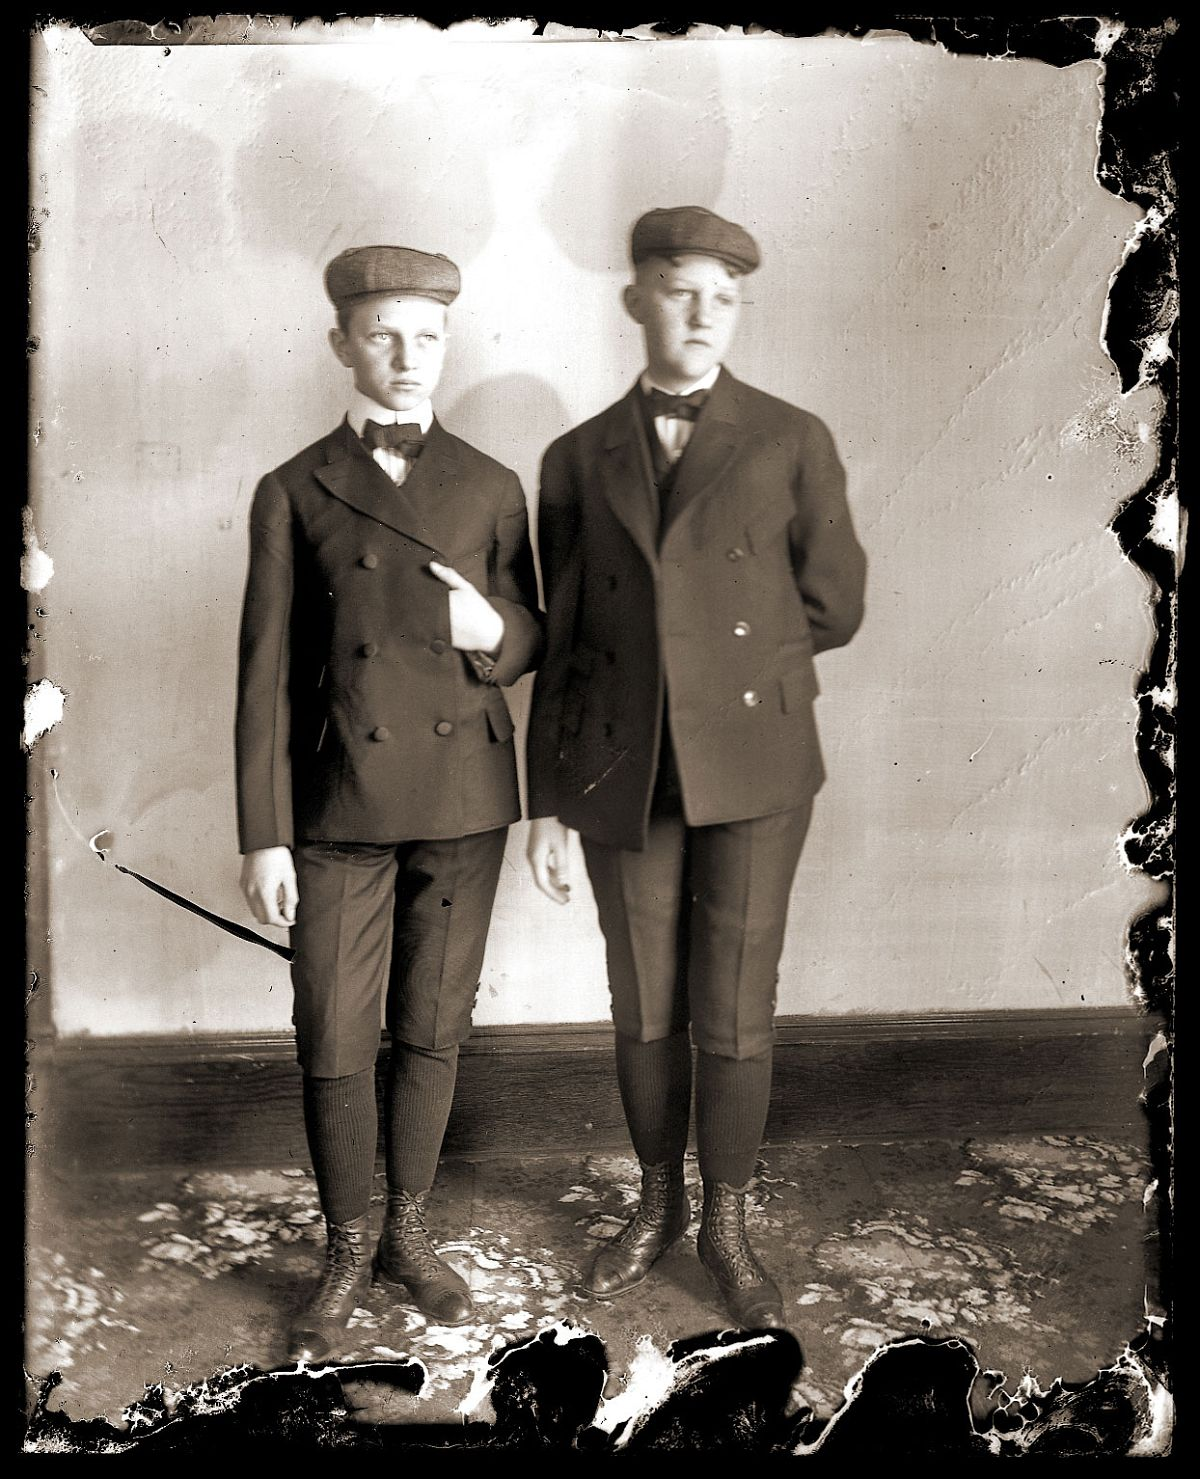 Two young boys in suits